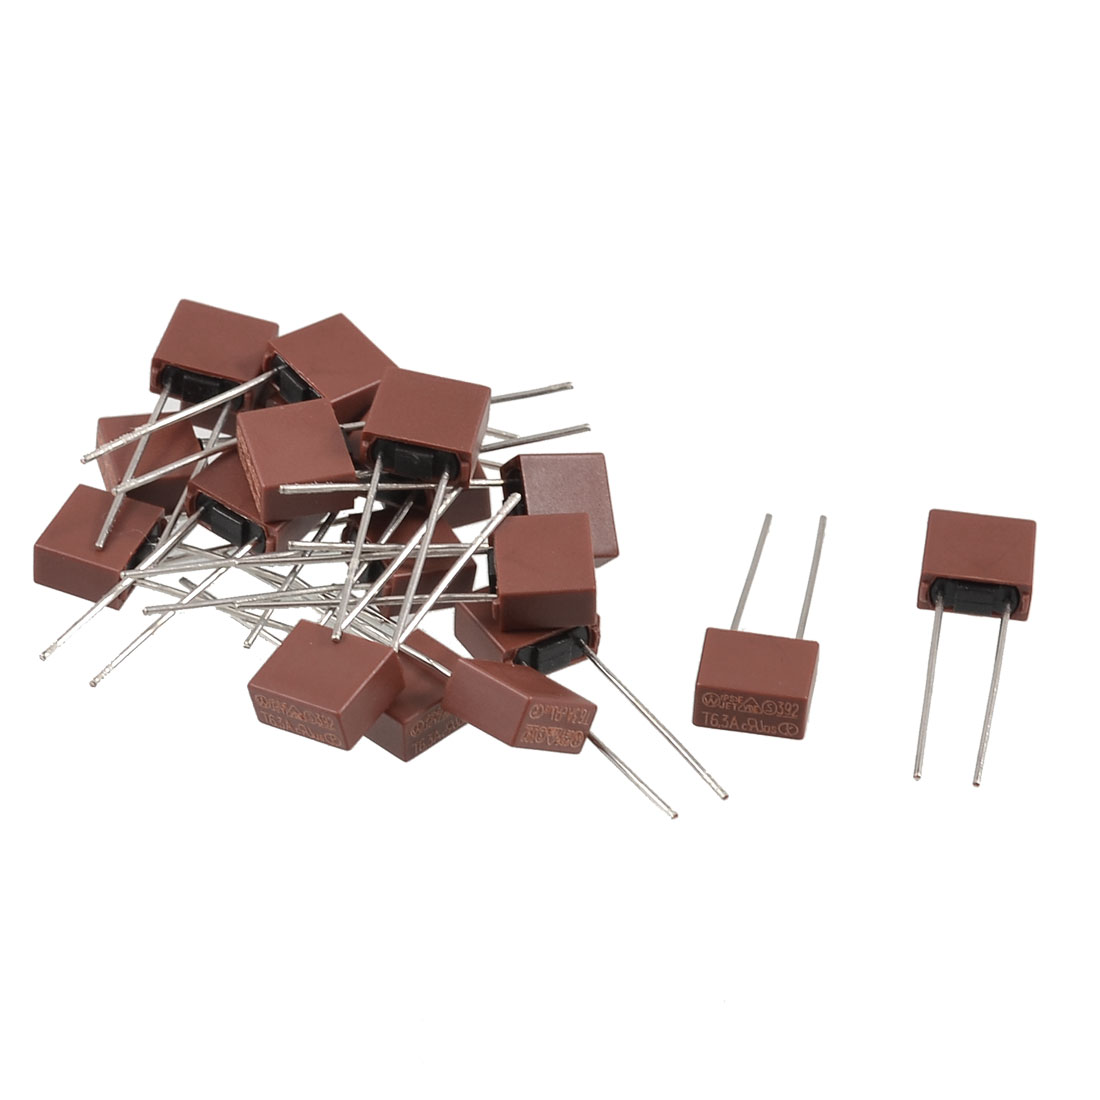 20 Pcs Square Type Radial Leads Miniature Slow Blow Micro Fuse T6.3A 250V